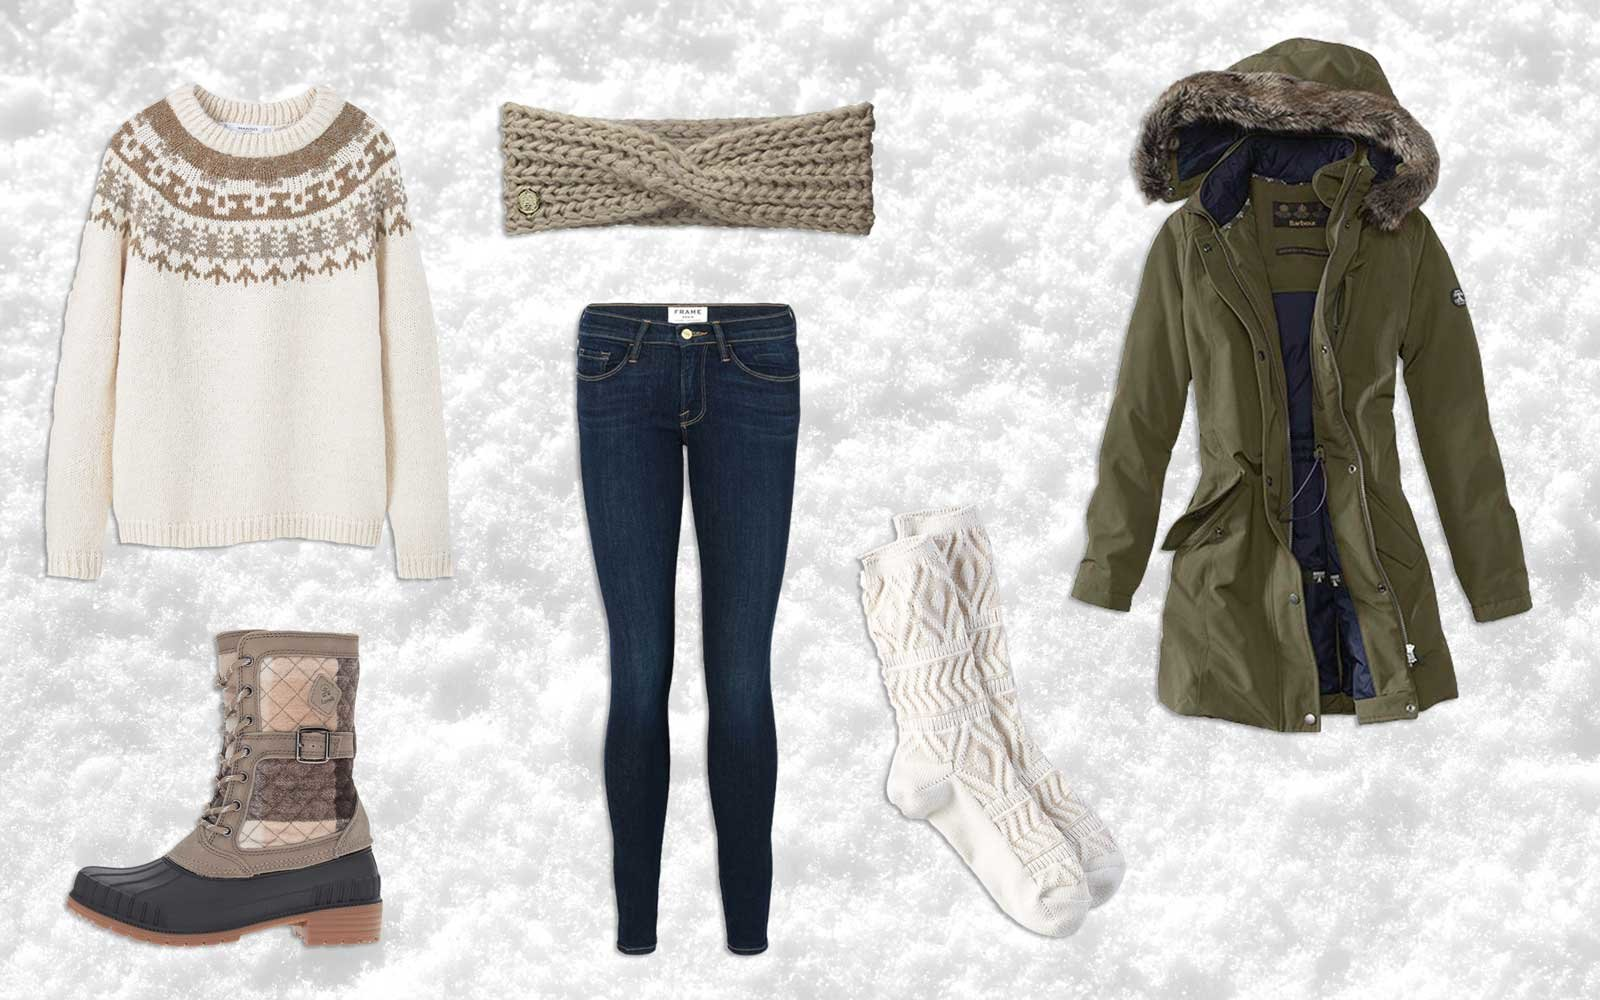 f0e233ff9cc3 Stylish Winter Travel Outfits